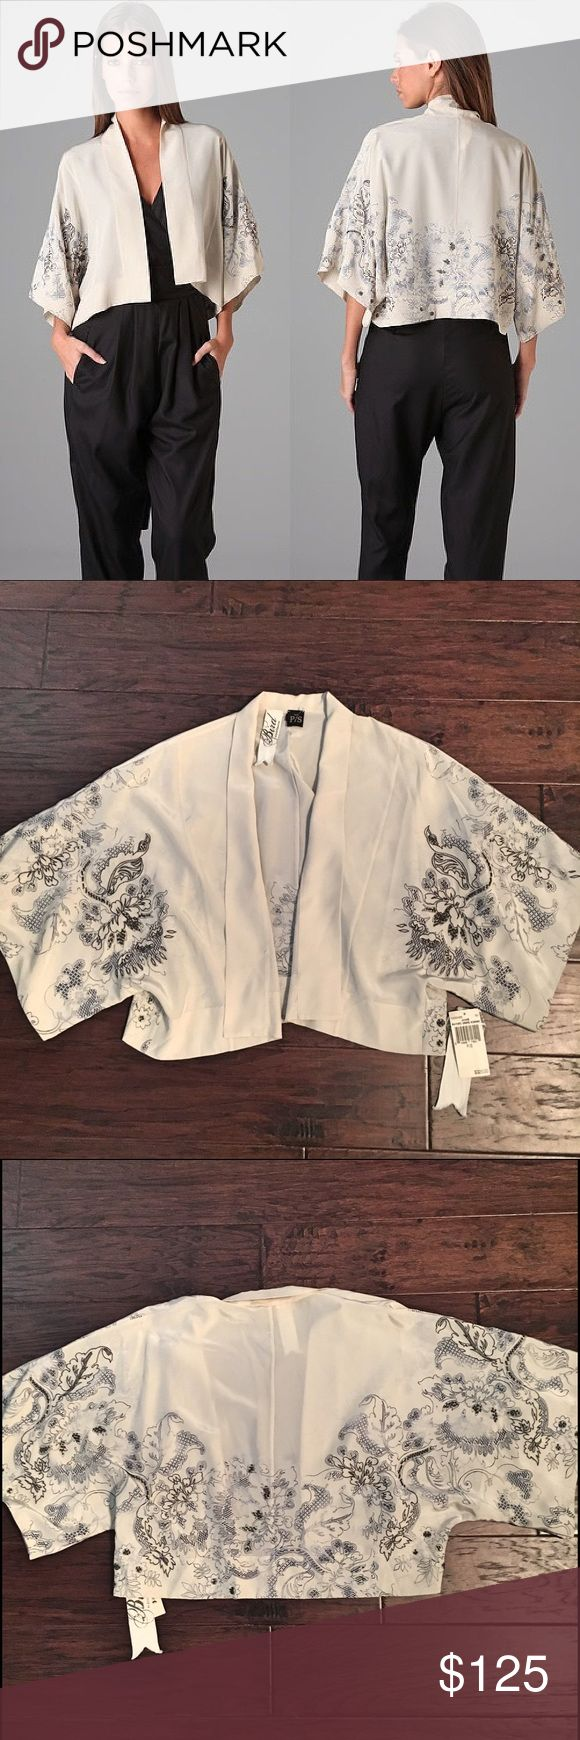 BIRD by JUICY COUTURE KIMONO JACKET BIRD by Juicy Couture Sayuri kimono jacket - 100% silk crepe with beautifully beaded details. Size small but will fit larger due to open loose fit. Perfect condition - NEW with tags. Looks great over a dress or jumpsuit! Bird by Juicy Couture Jackets & Coats